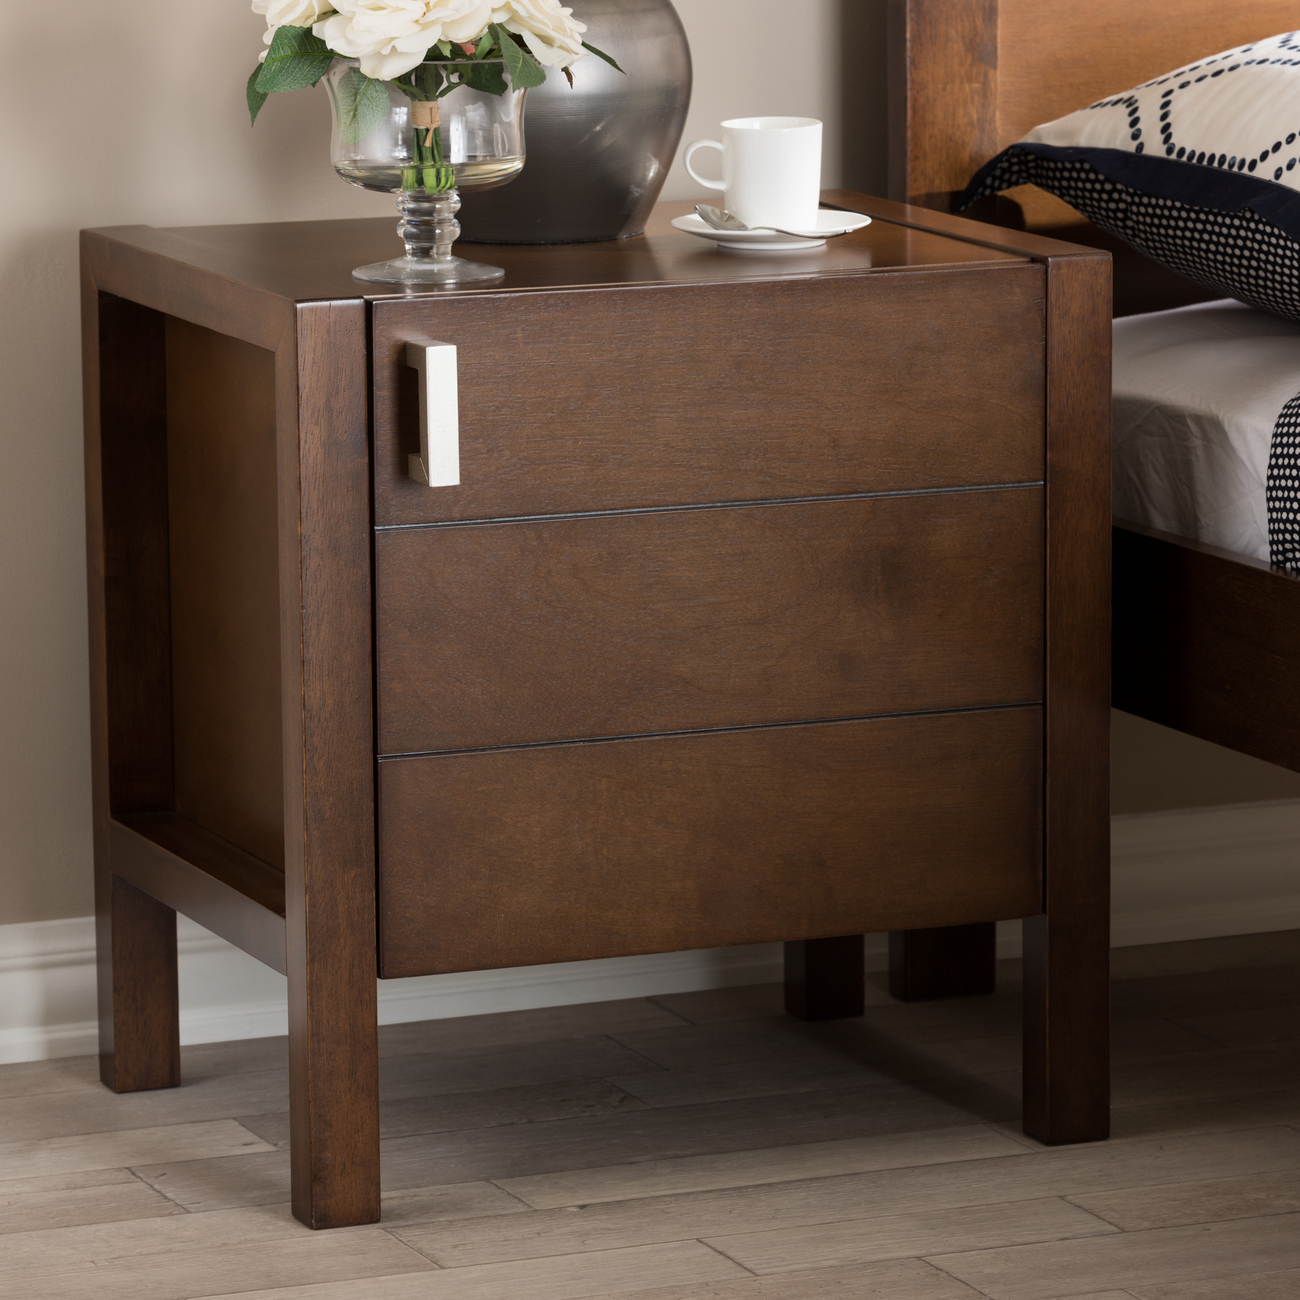 Contemporary   Nightstand   Modern   Brown   Wood